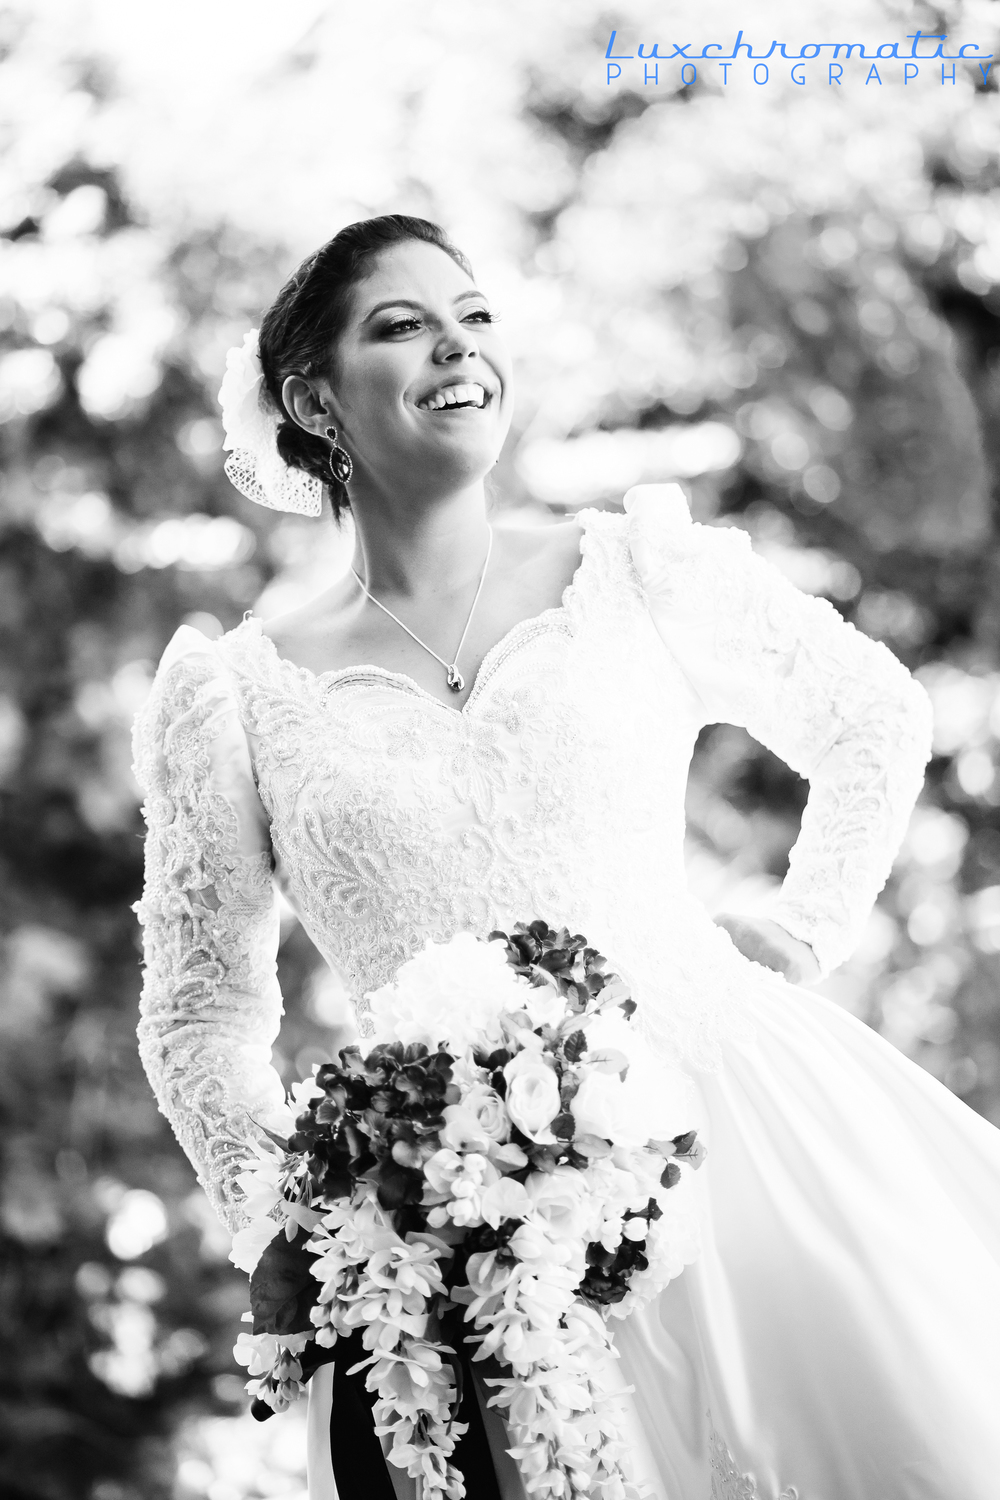 San-Francisco-Bay-Area-Wedding-Fremont-Bride-Luxchromatic-Photography_Diondra_Scott-1590 copy.jpg